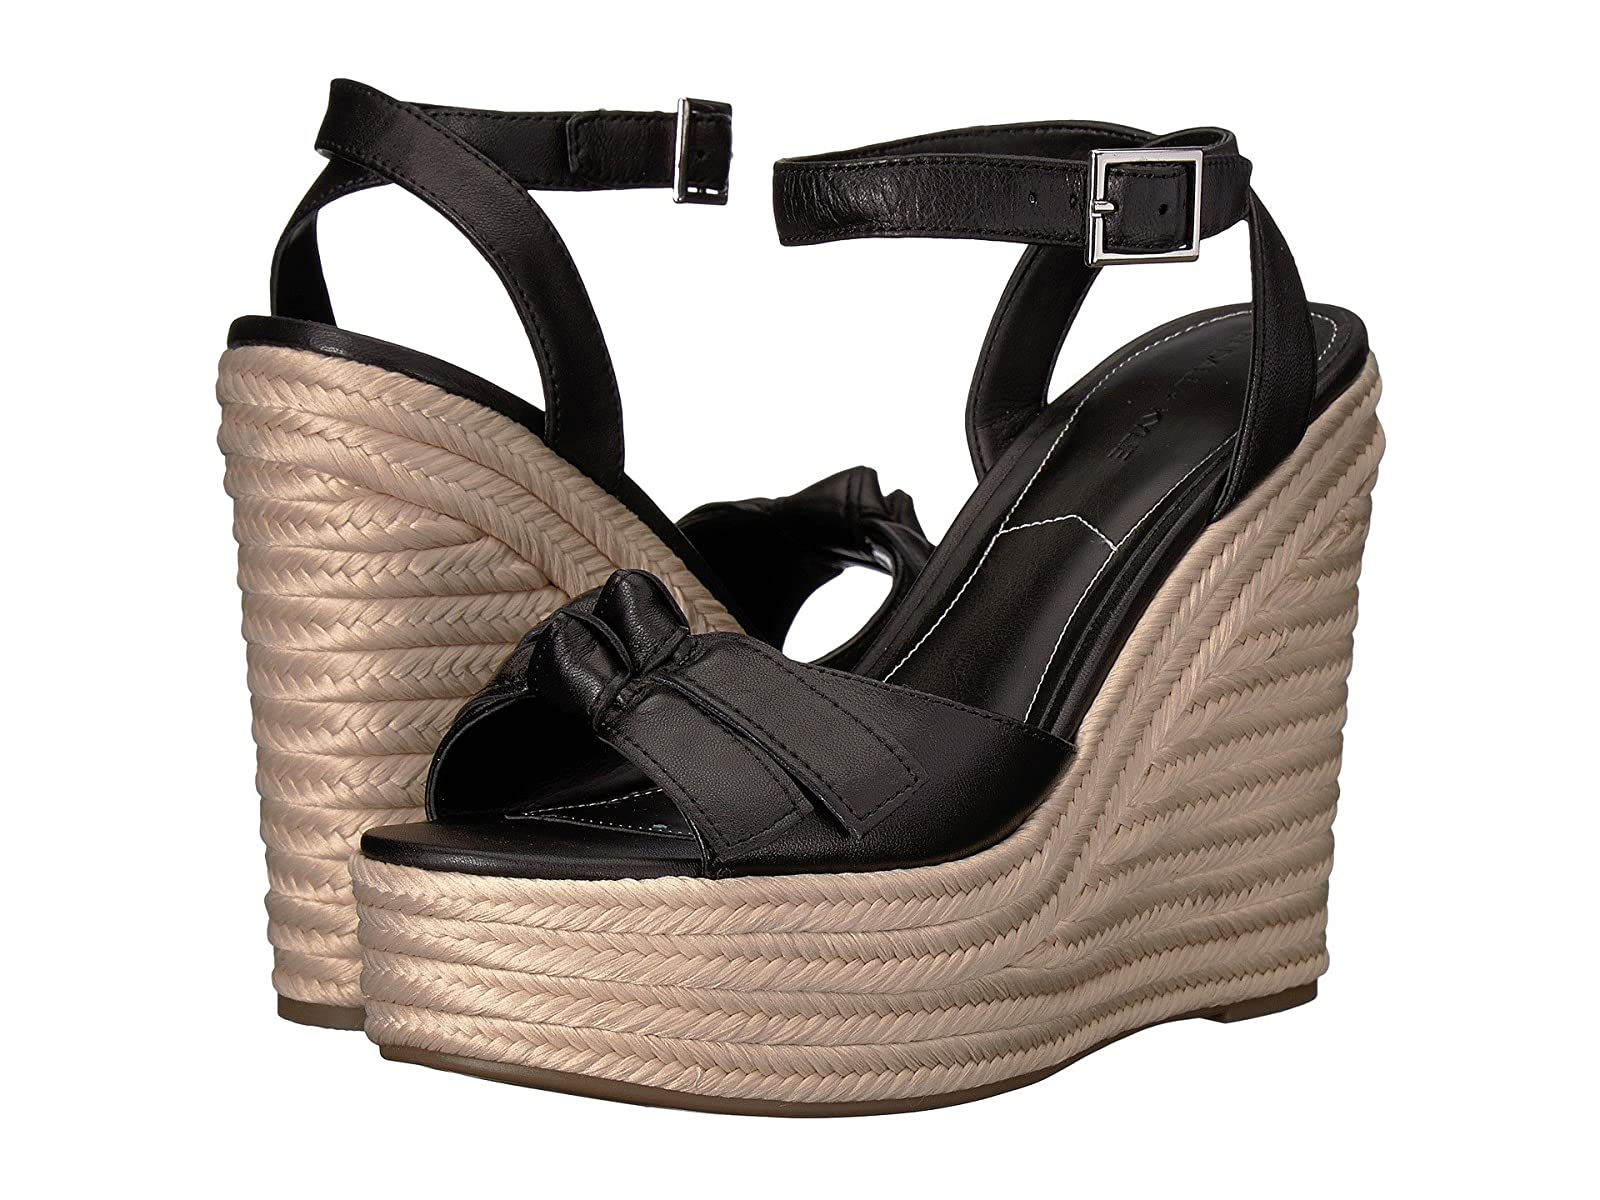 KENDALL + KYLIE GwennCheap and distinctive eye-catching shoes